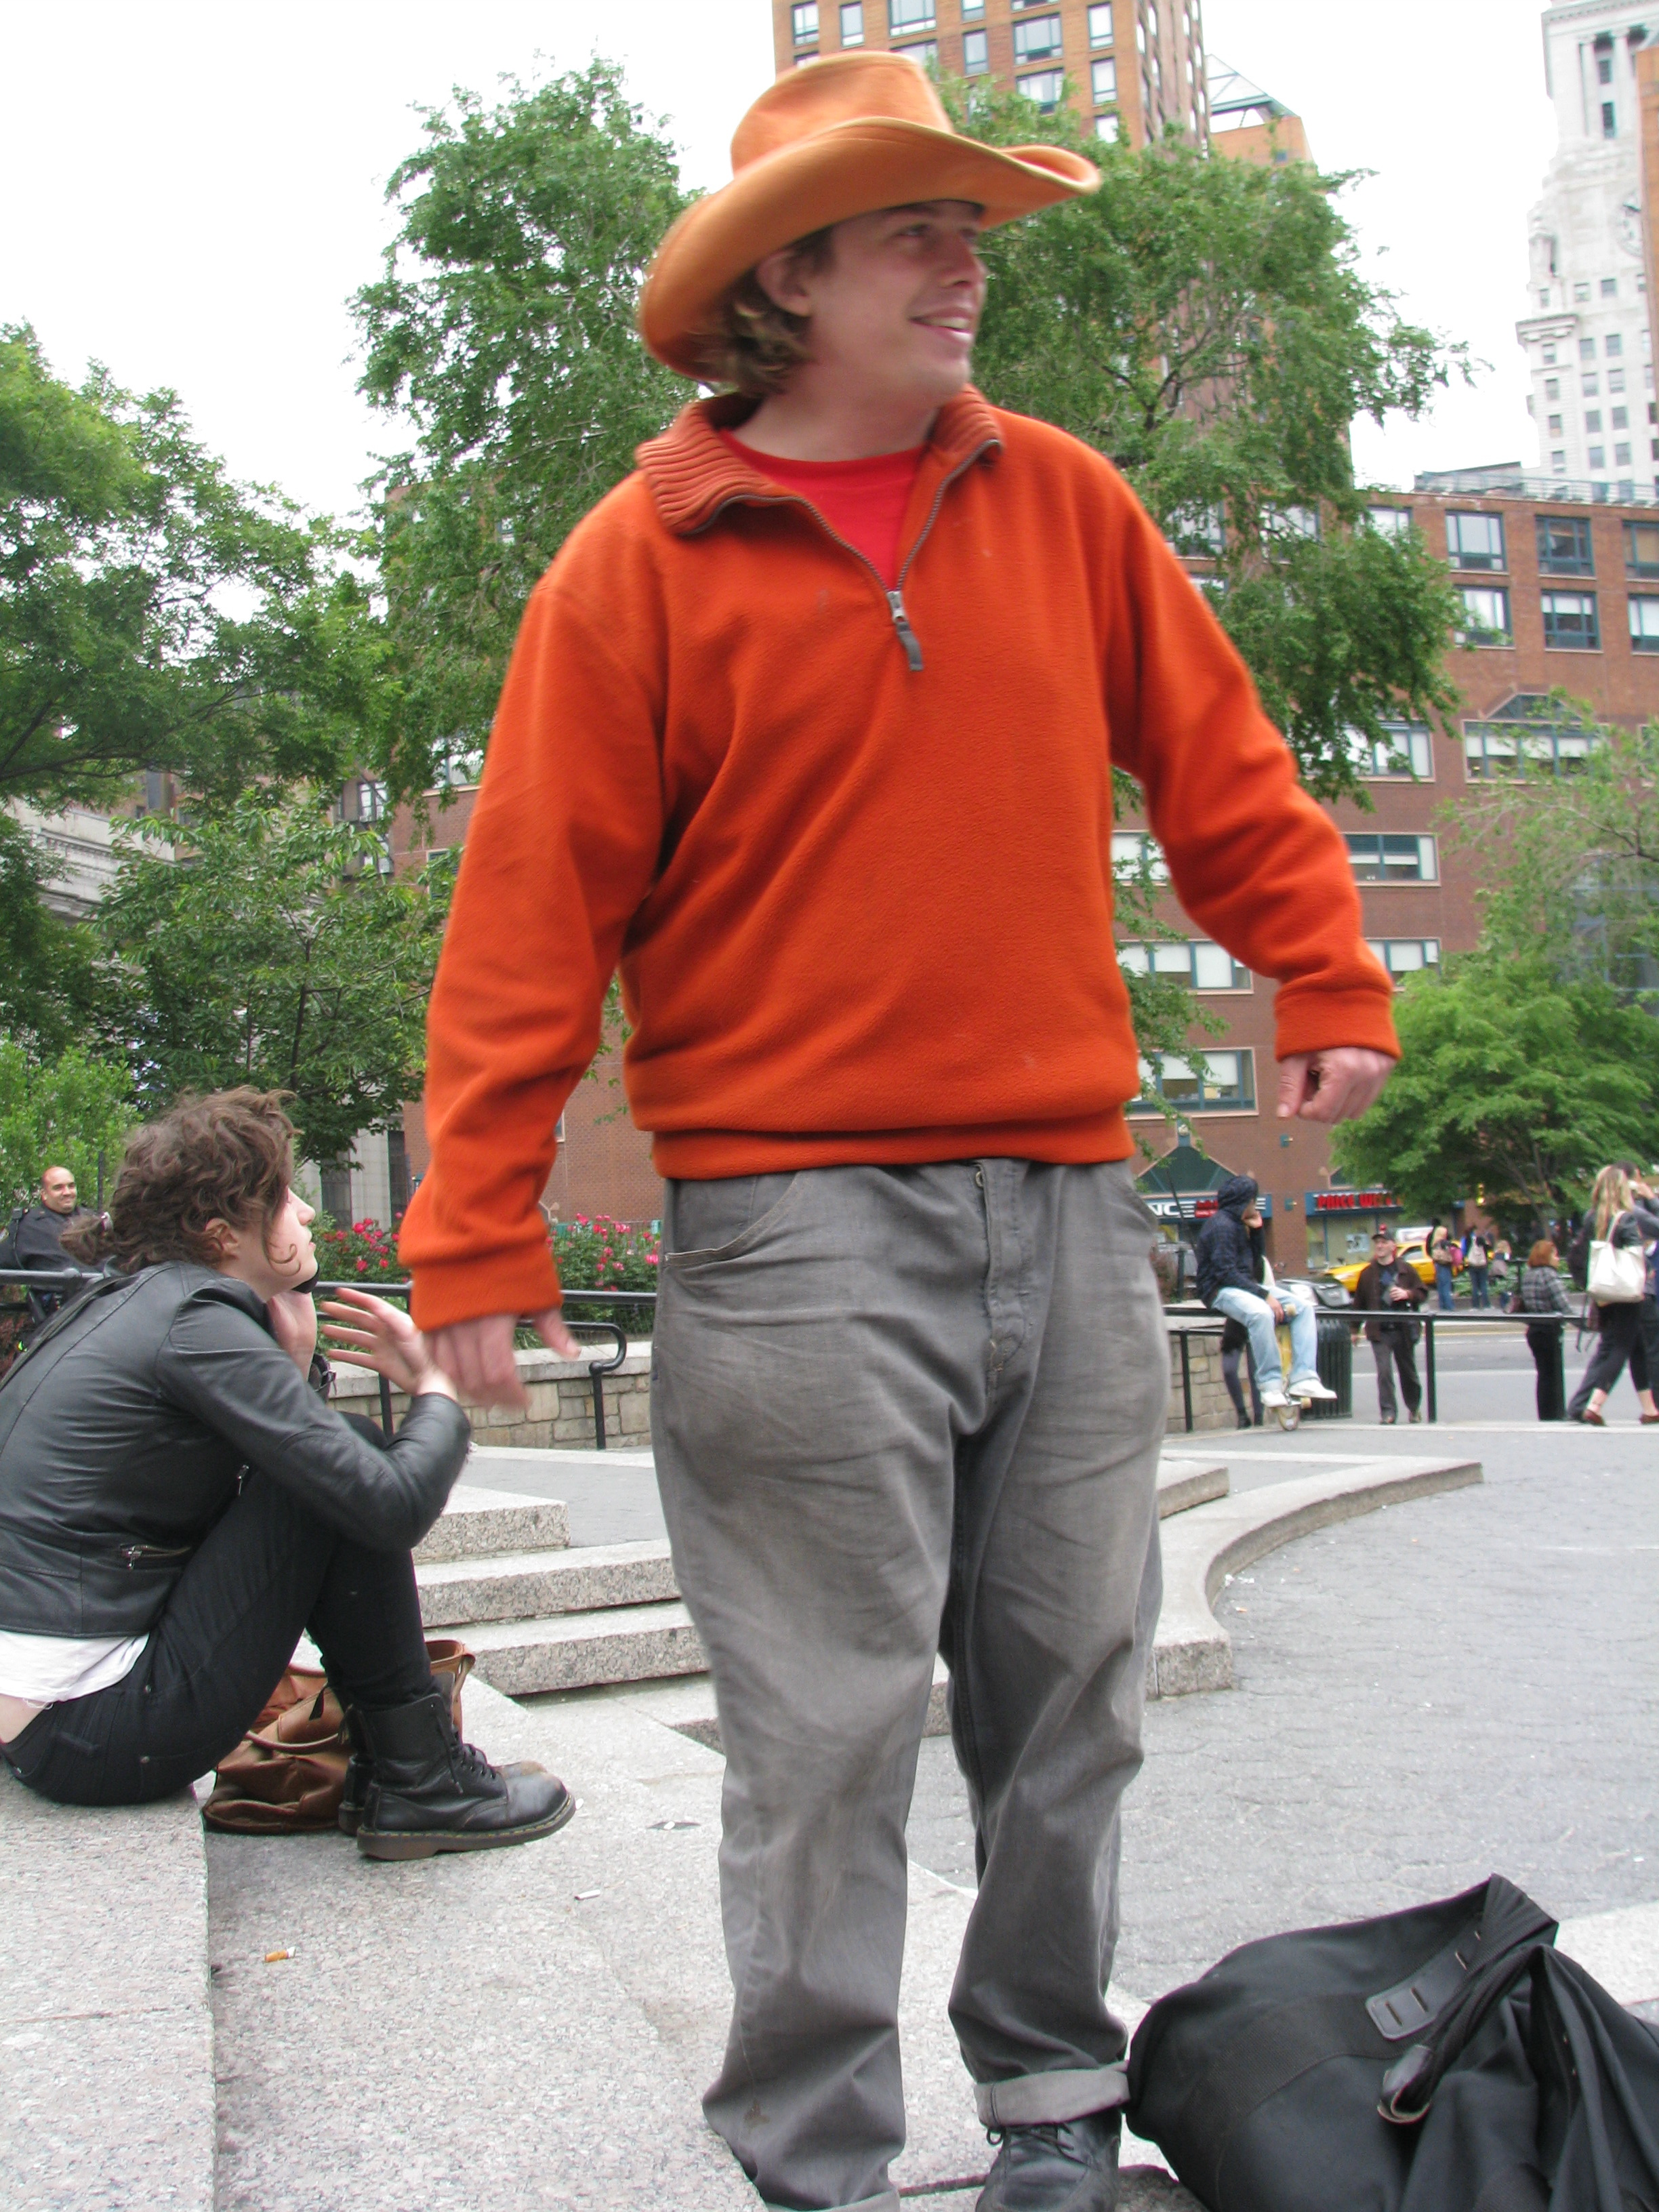 guy wearing orange hat & coat